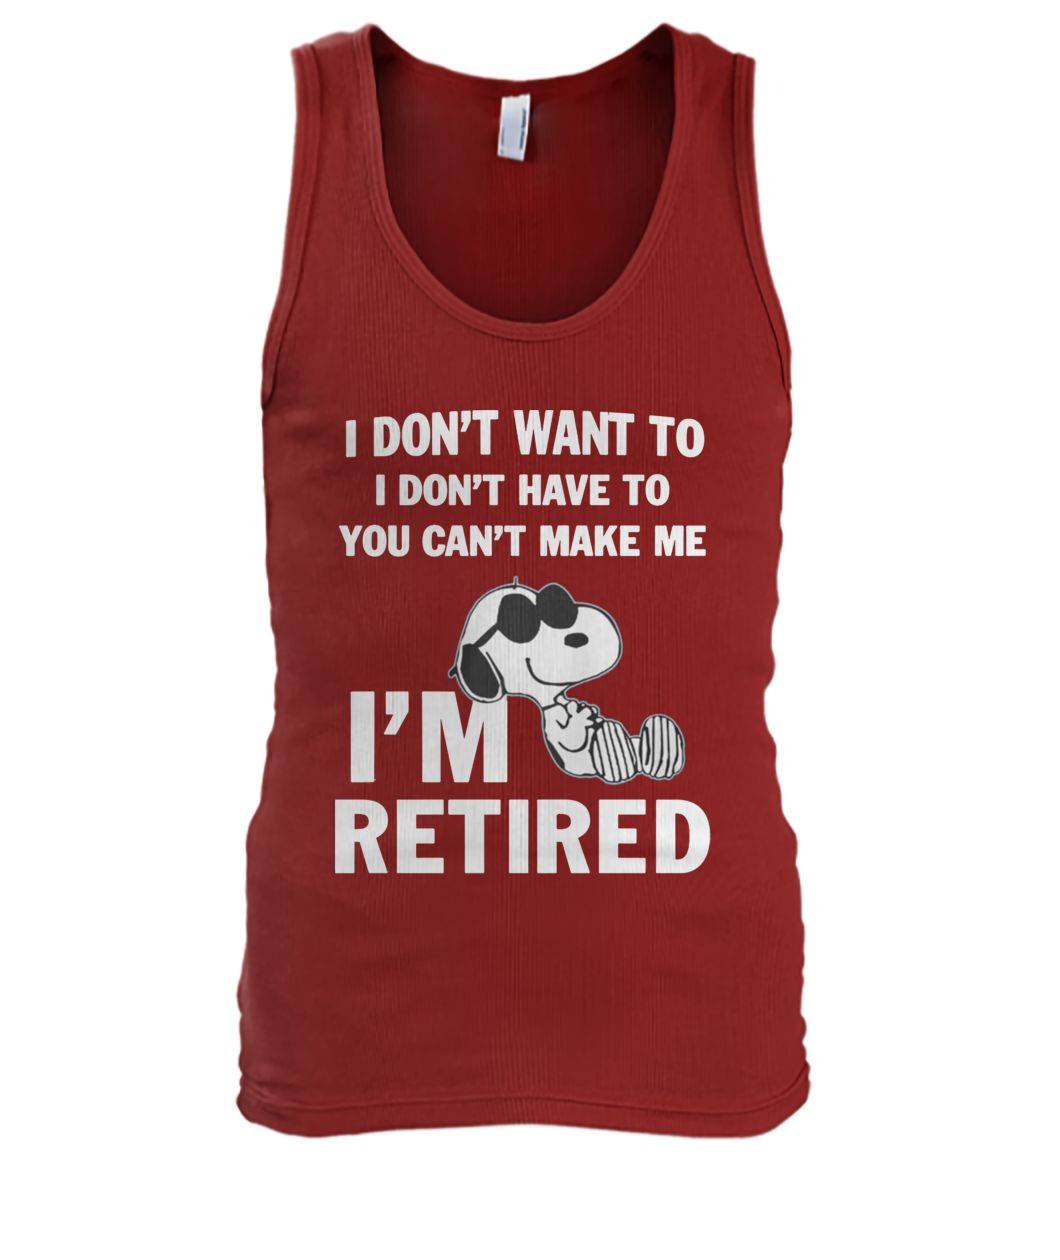 Snoopy I don't want to I don't have to you can't make me I'm retired men's tank top